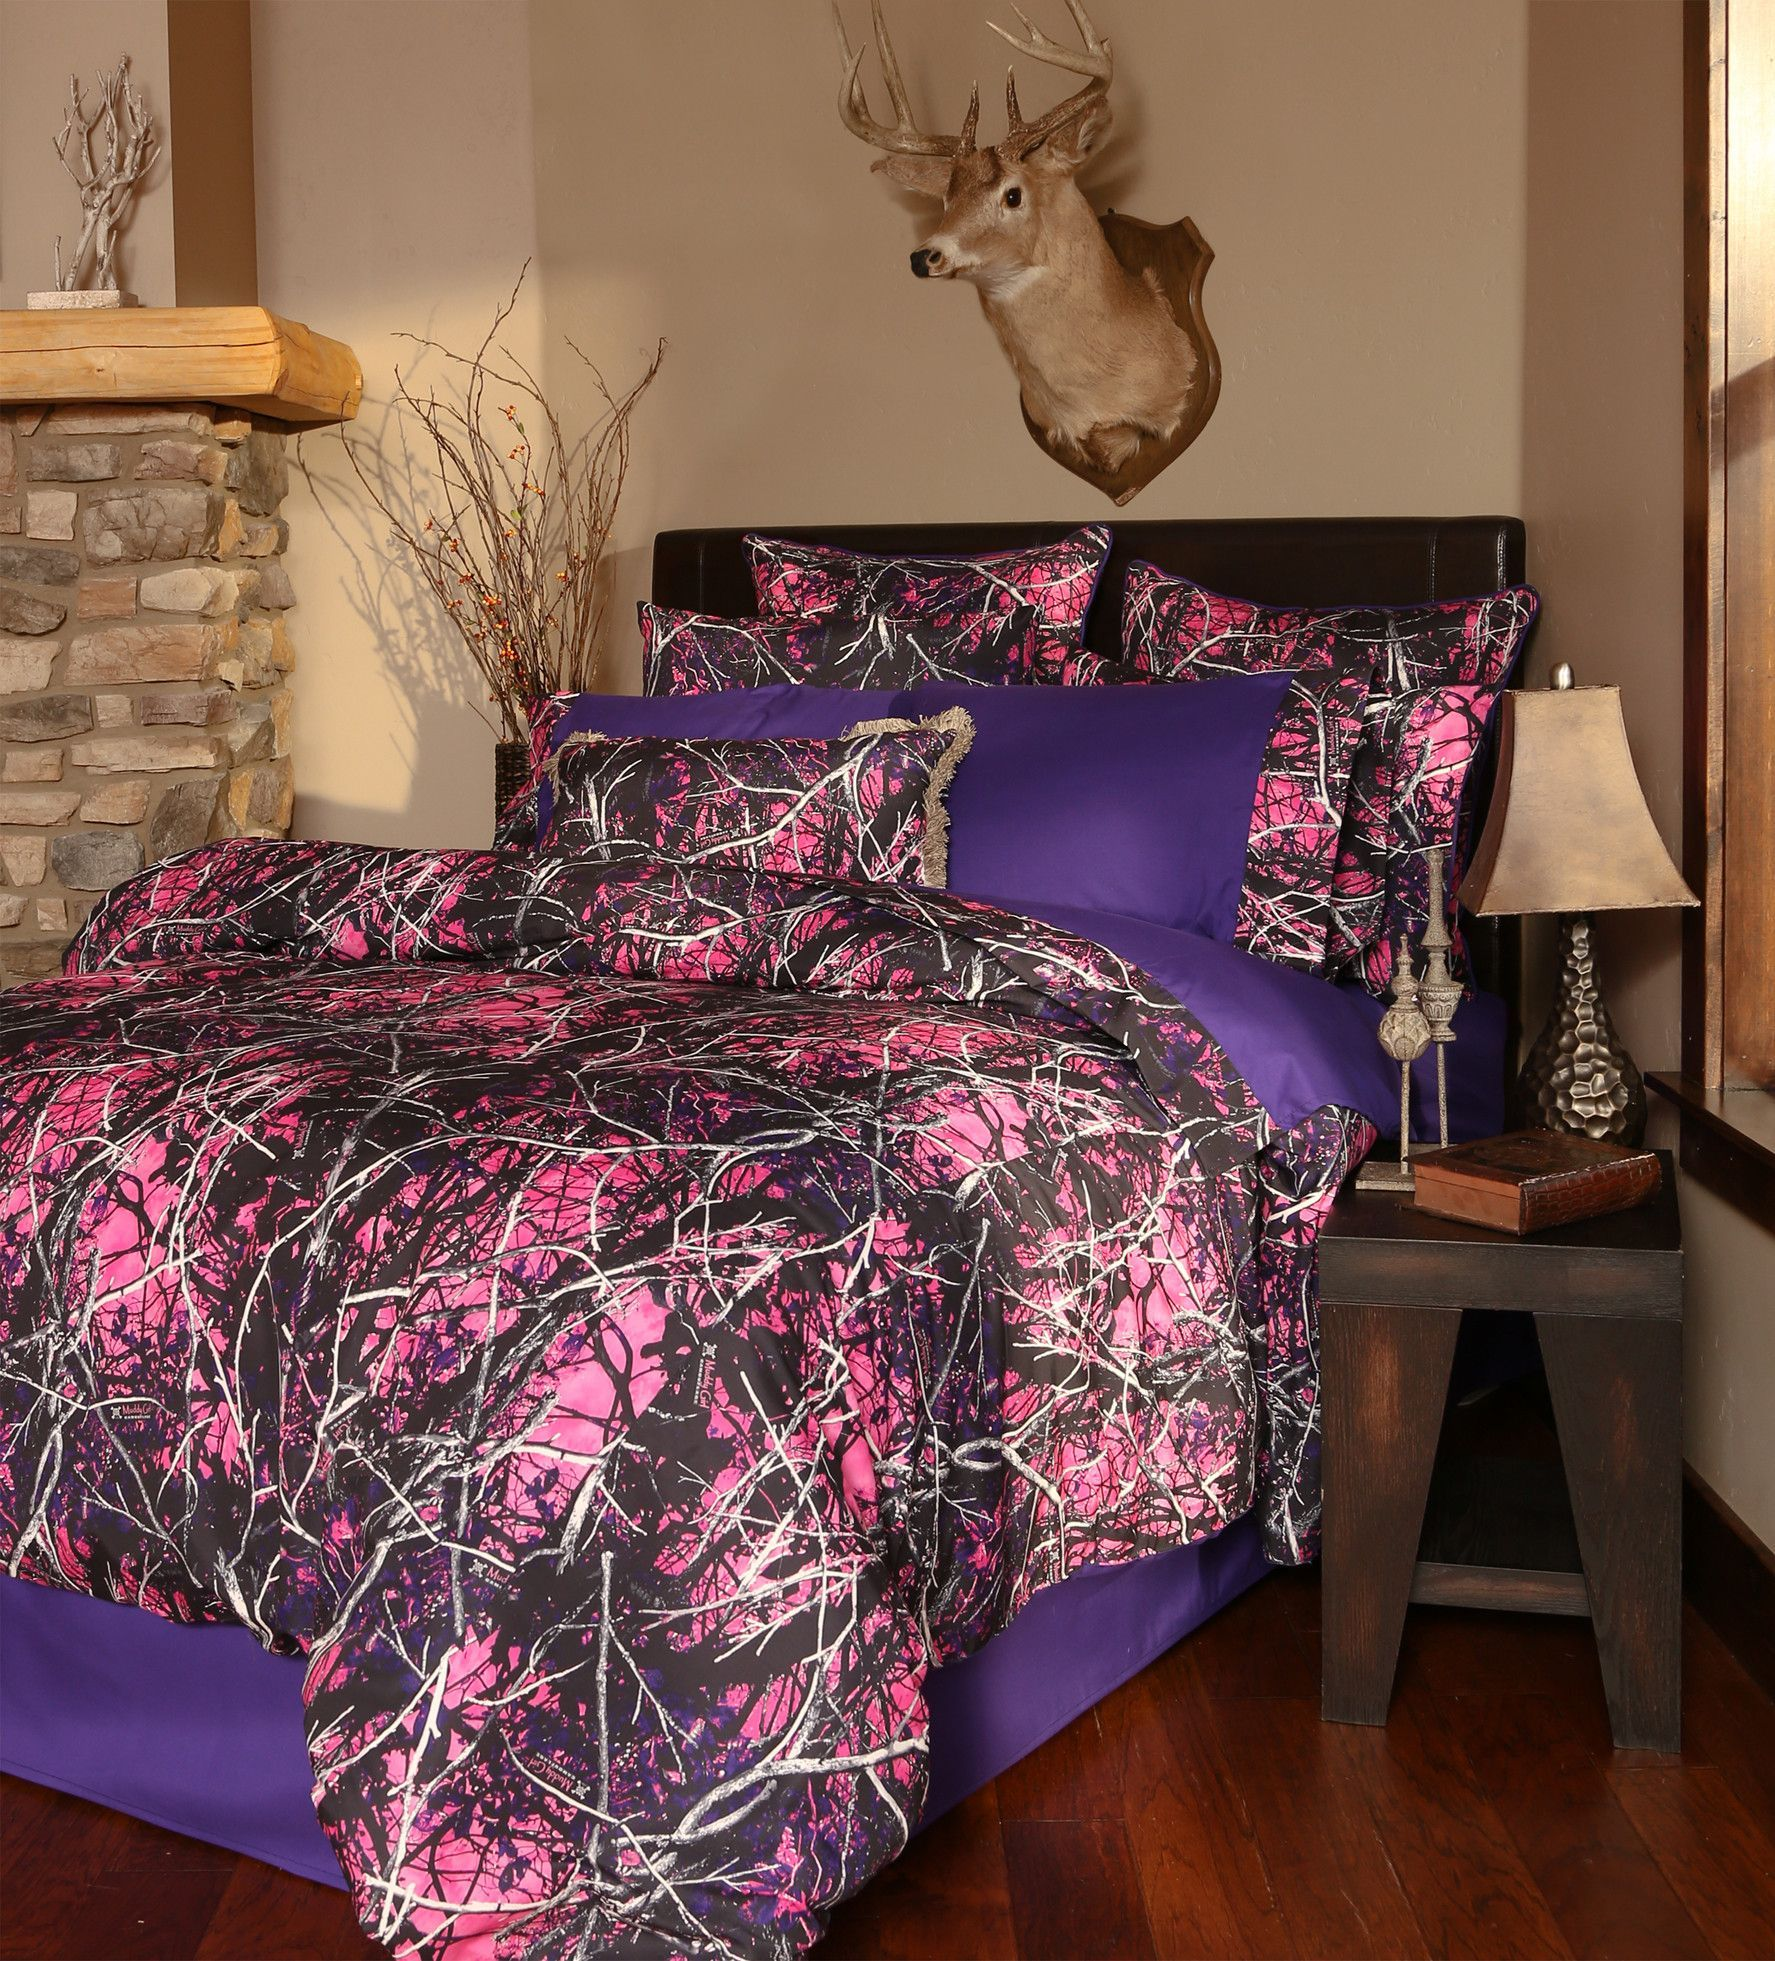 Pink camo bedding twin - Muddy Girl Camo Comforter Set